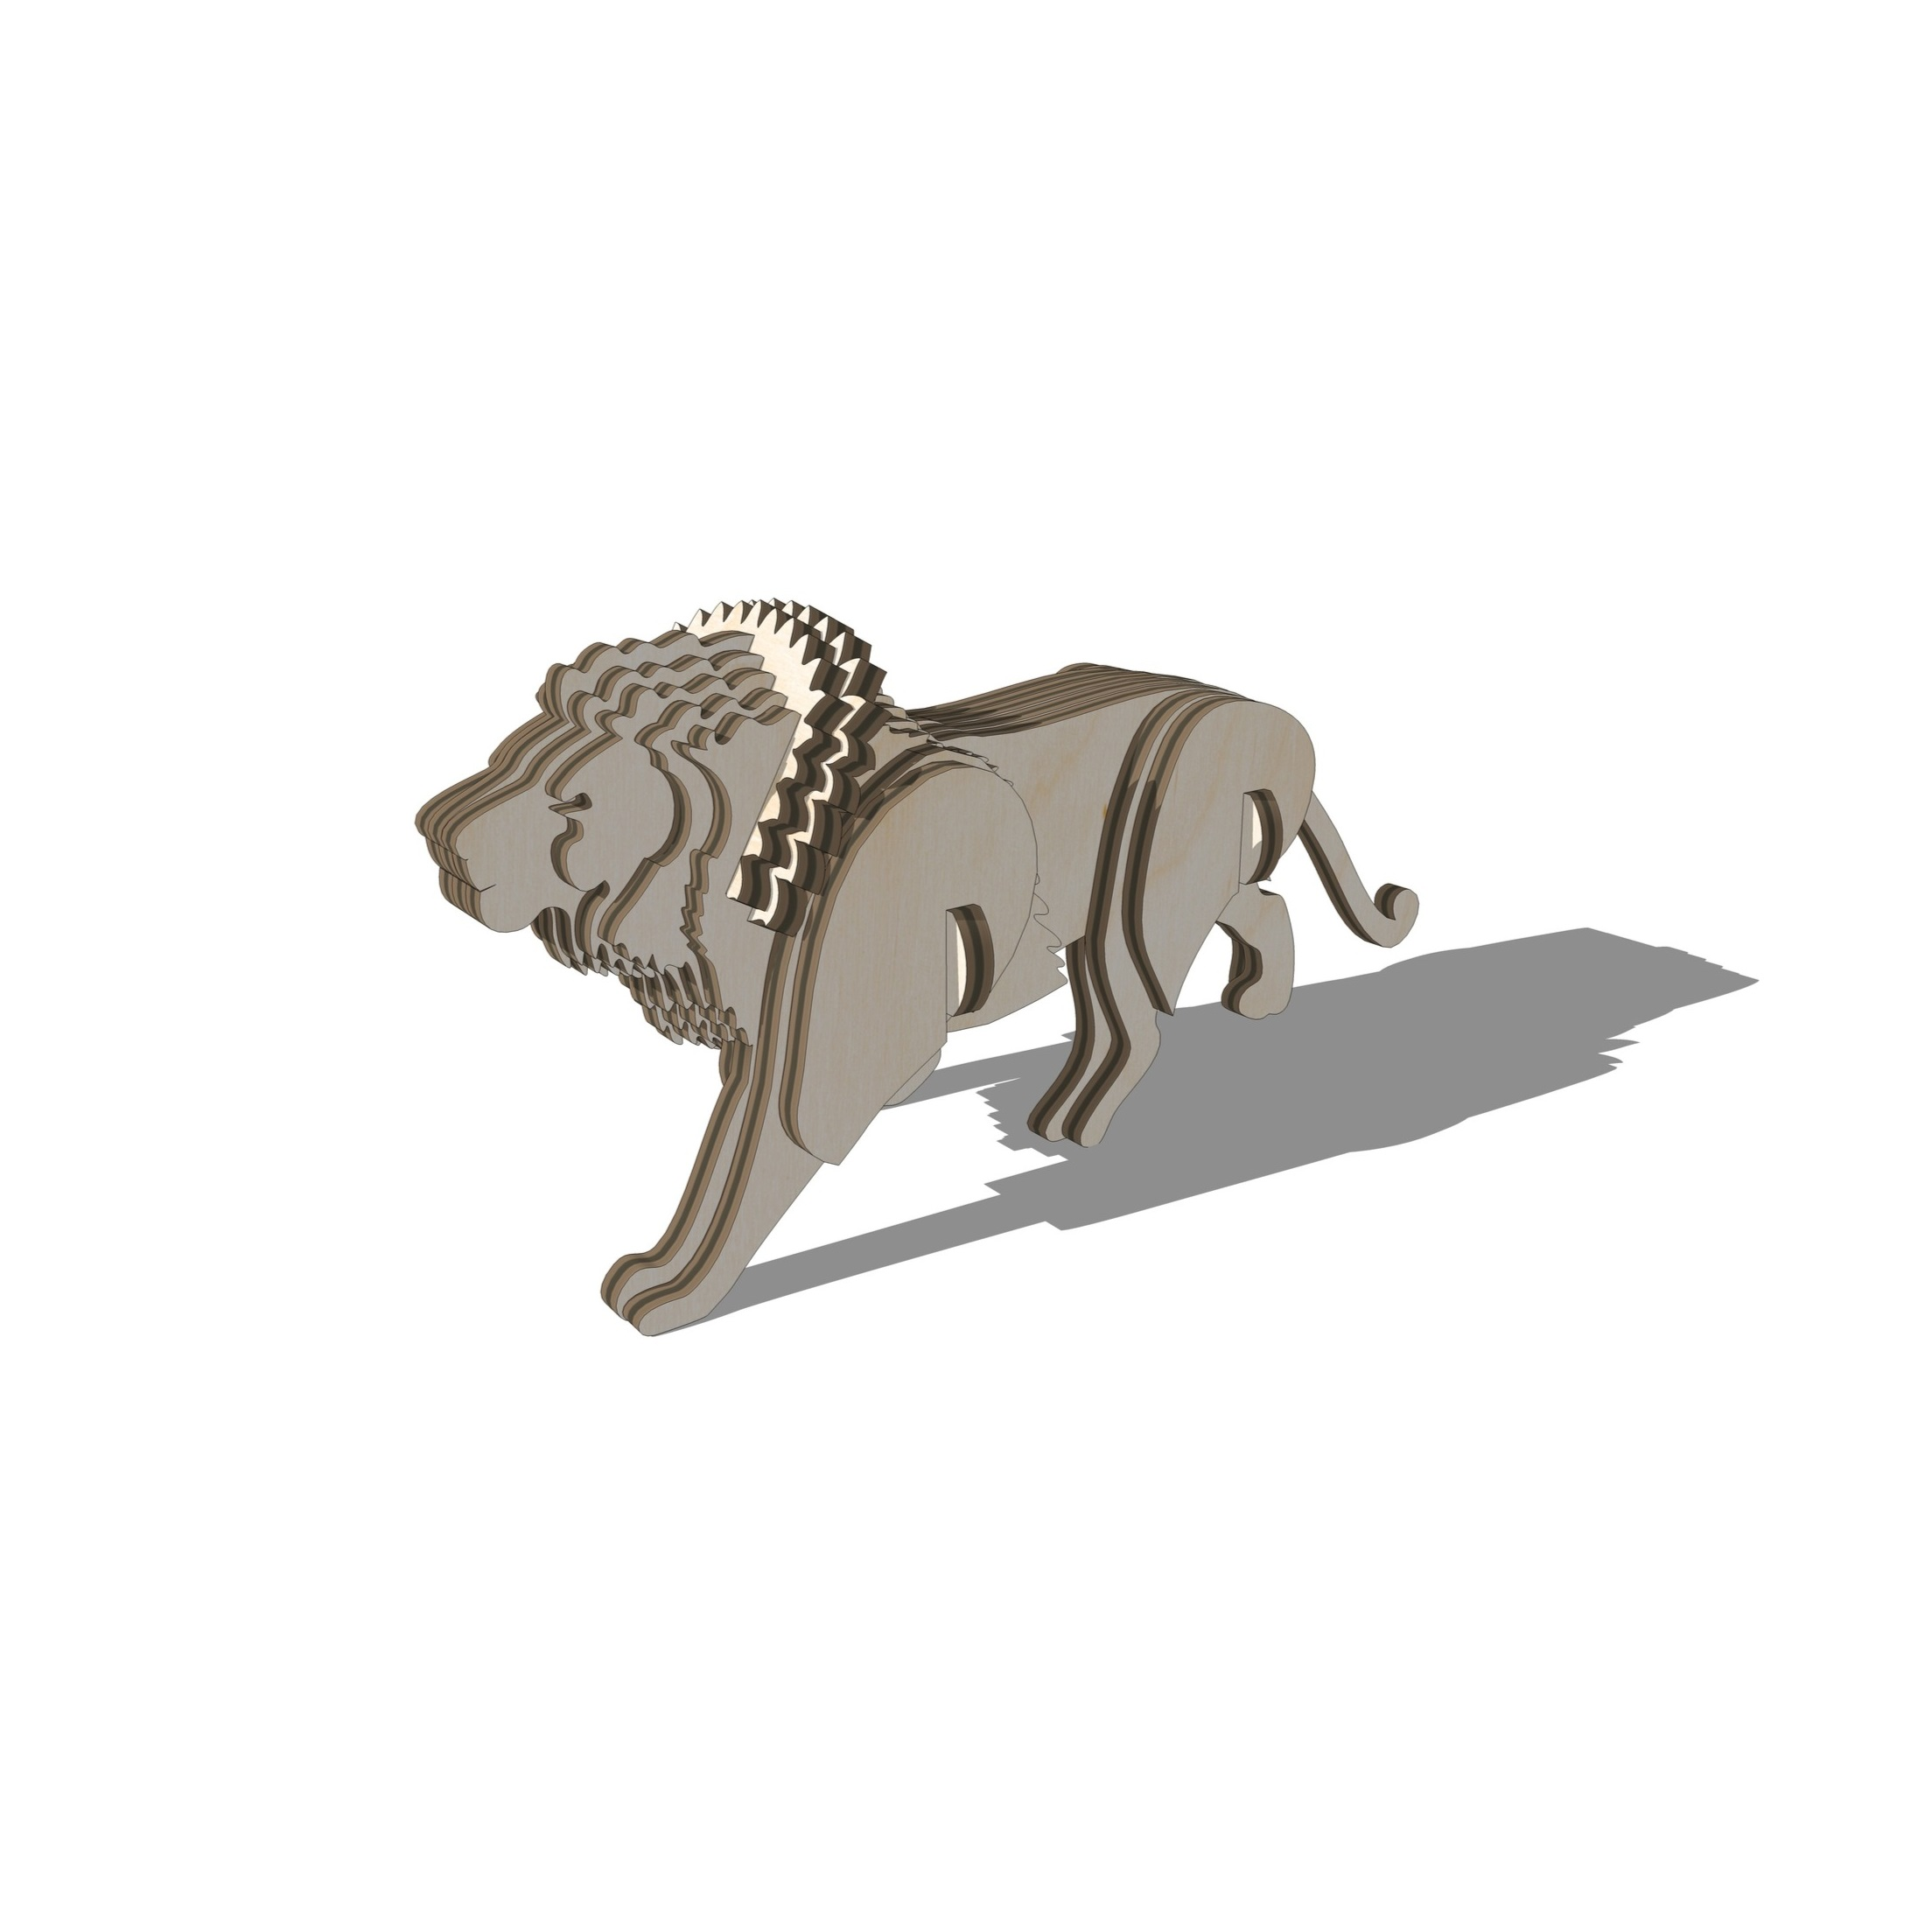 Laser Cut Lion 3D Puzzle DXF File